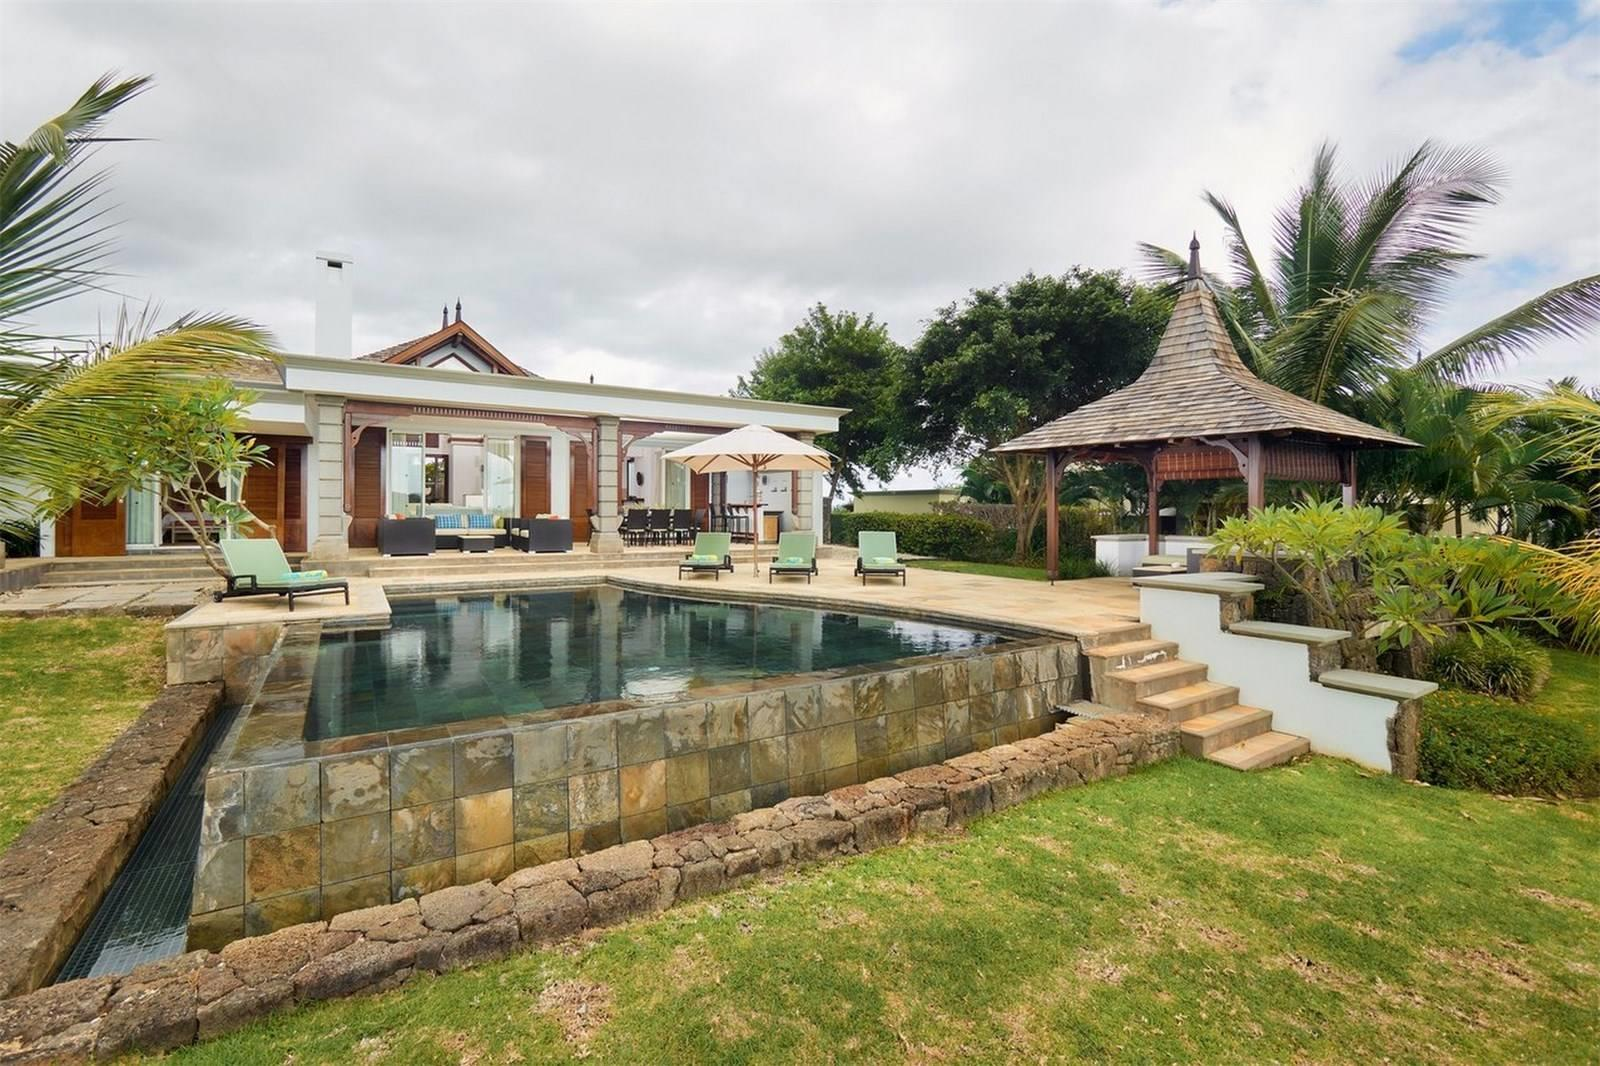 4 Bedroom House For Sale in Bel Ombre